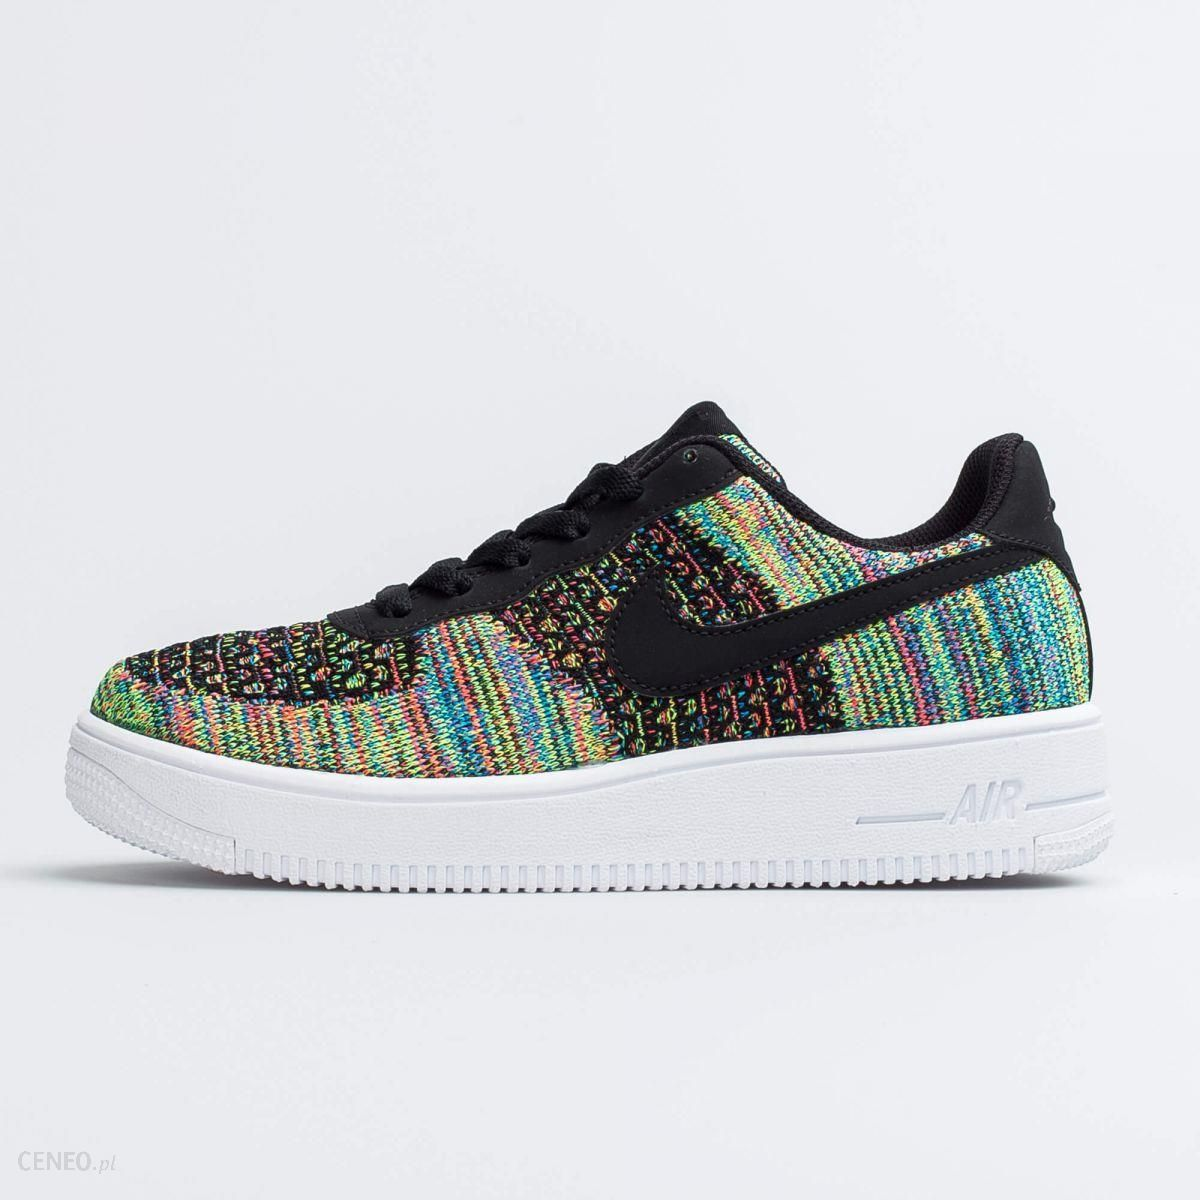 AIR FORCE 1 FLYKNIT 2.0 (GS) BV0063 002 Ceny i opinie Ceneo.pl